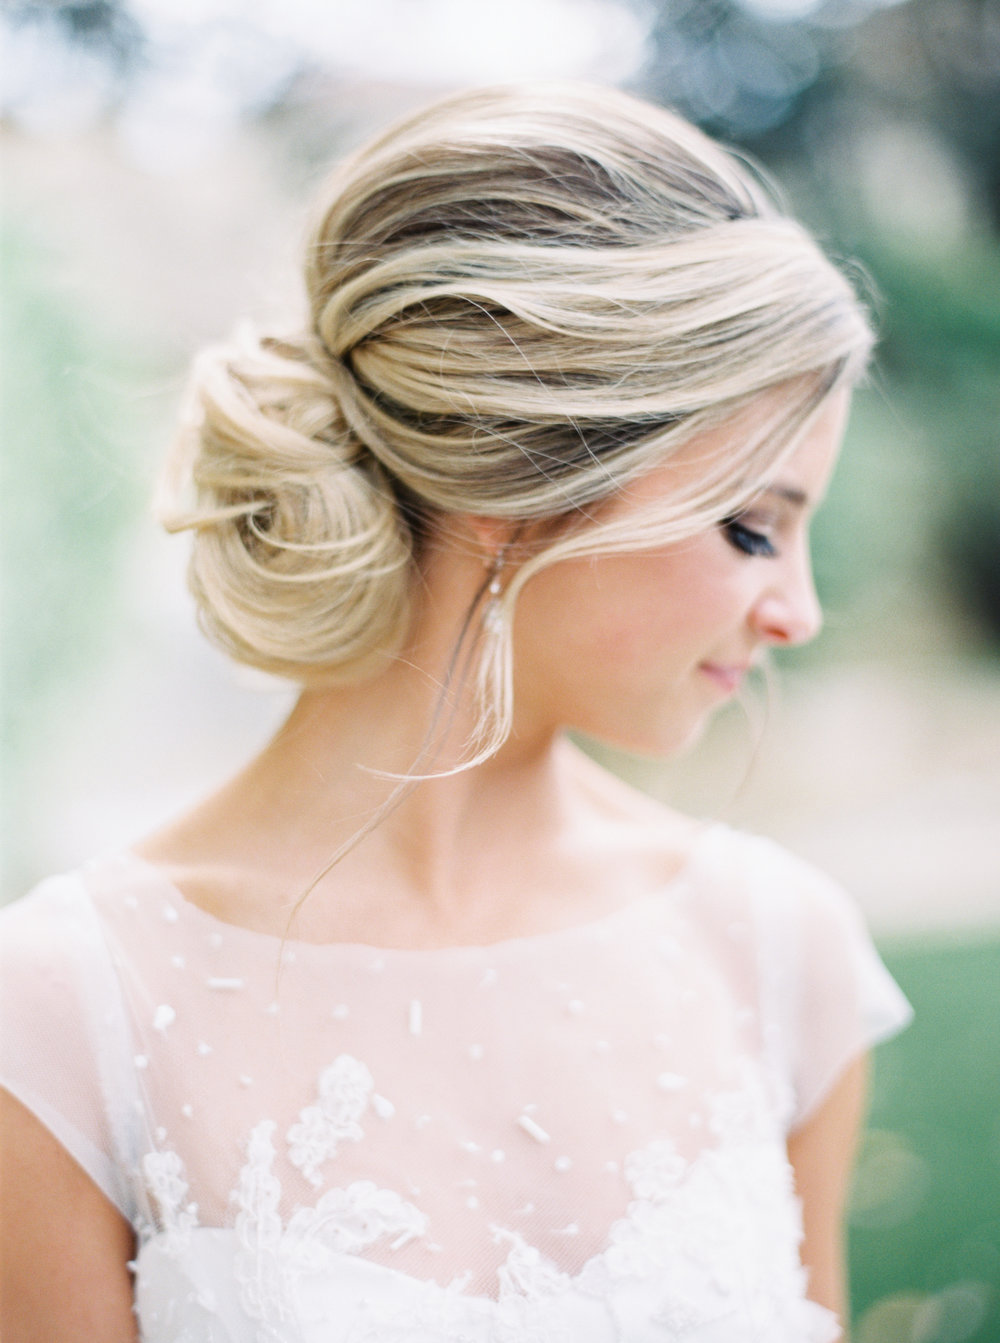 8 stunning bridal up-do hairstyles-2.jpg